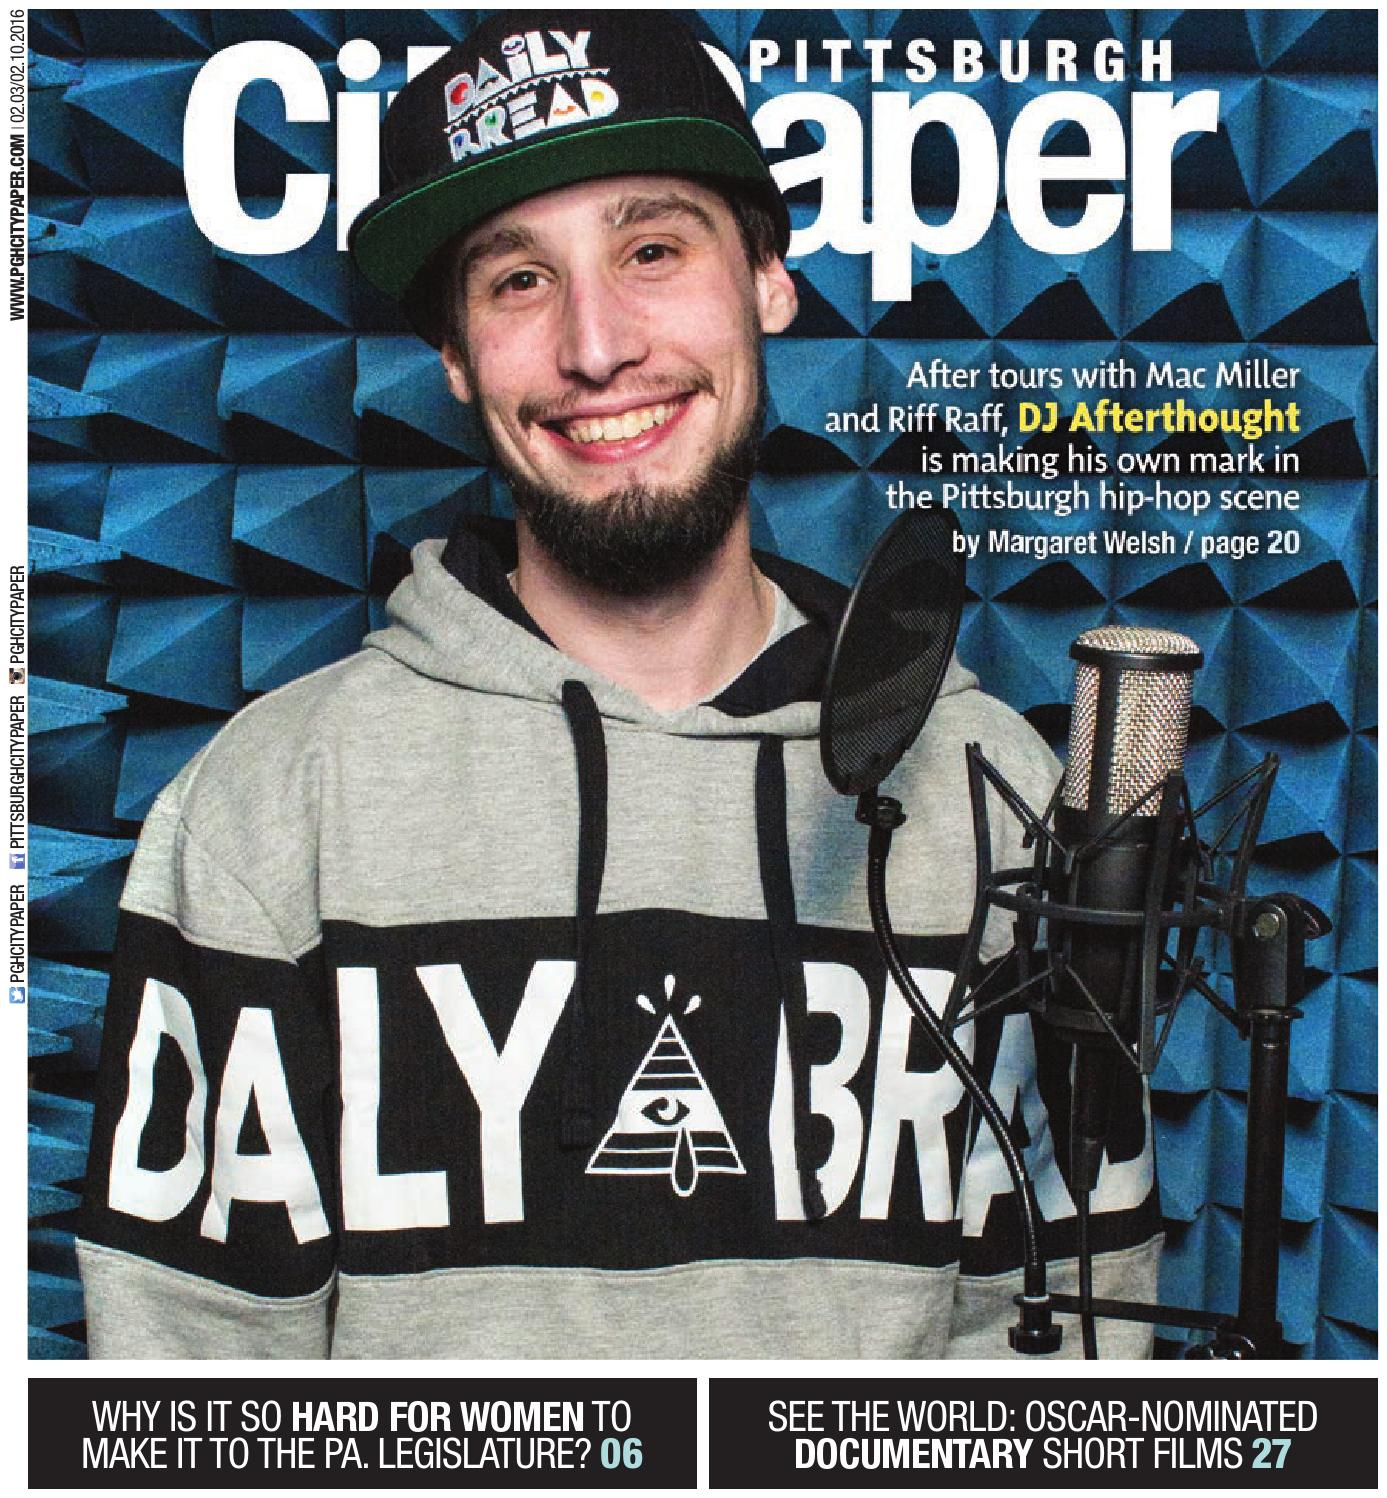 February 3 2016 pittsburgh city paper by pittsburgh city paper